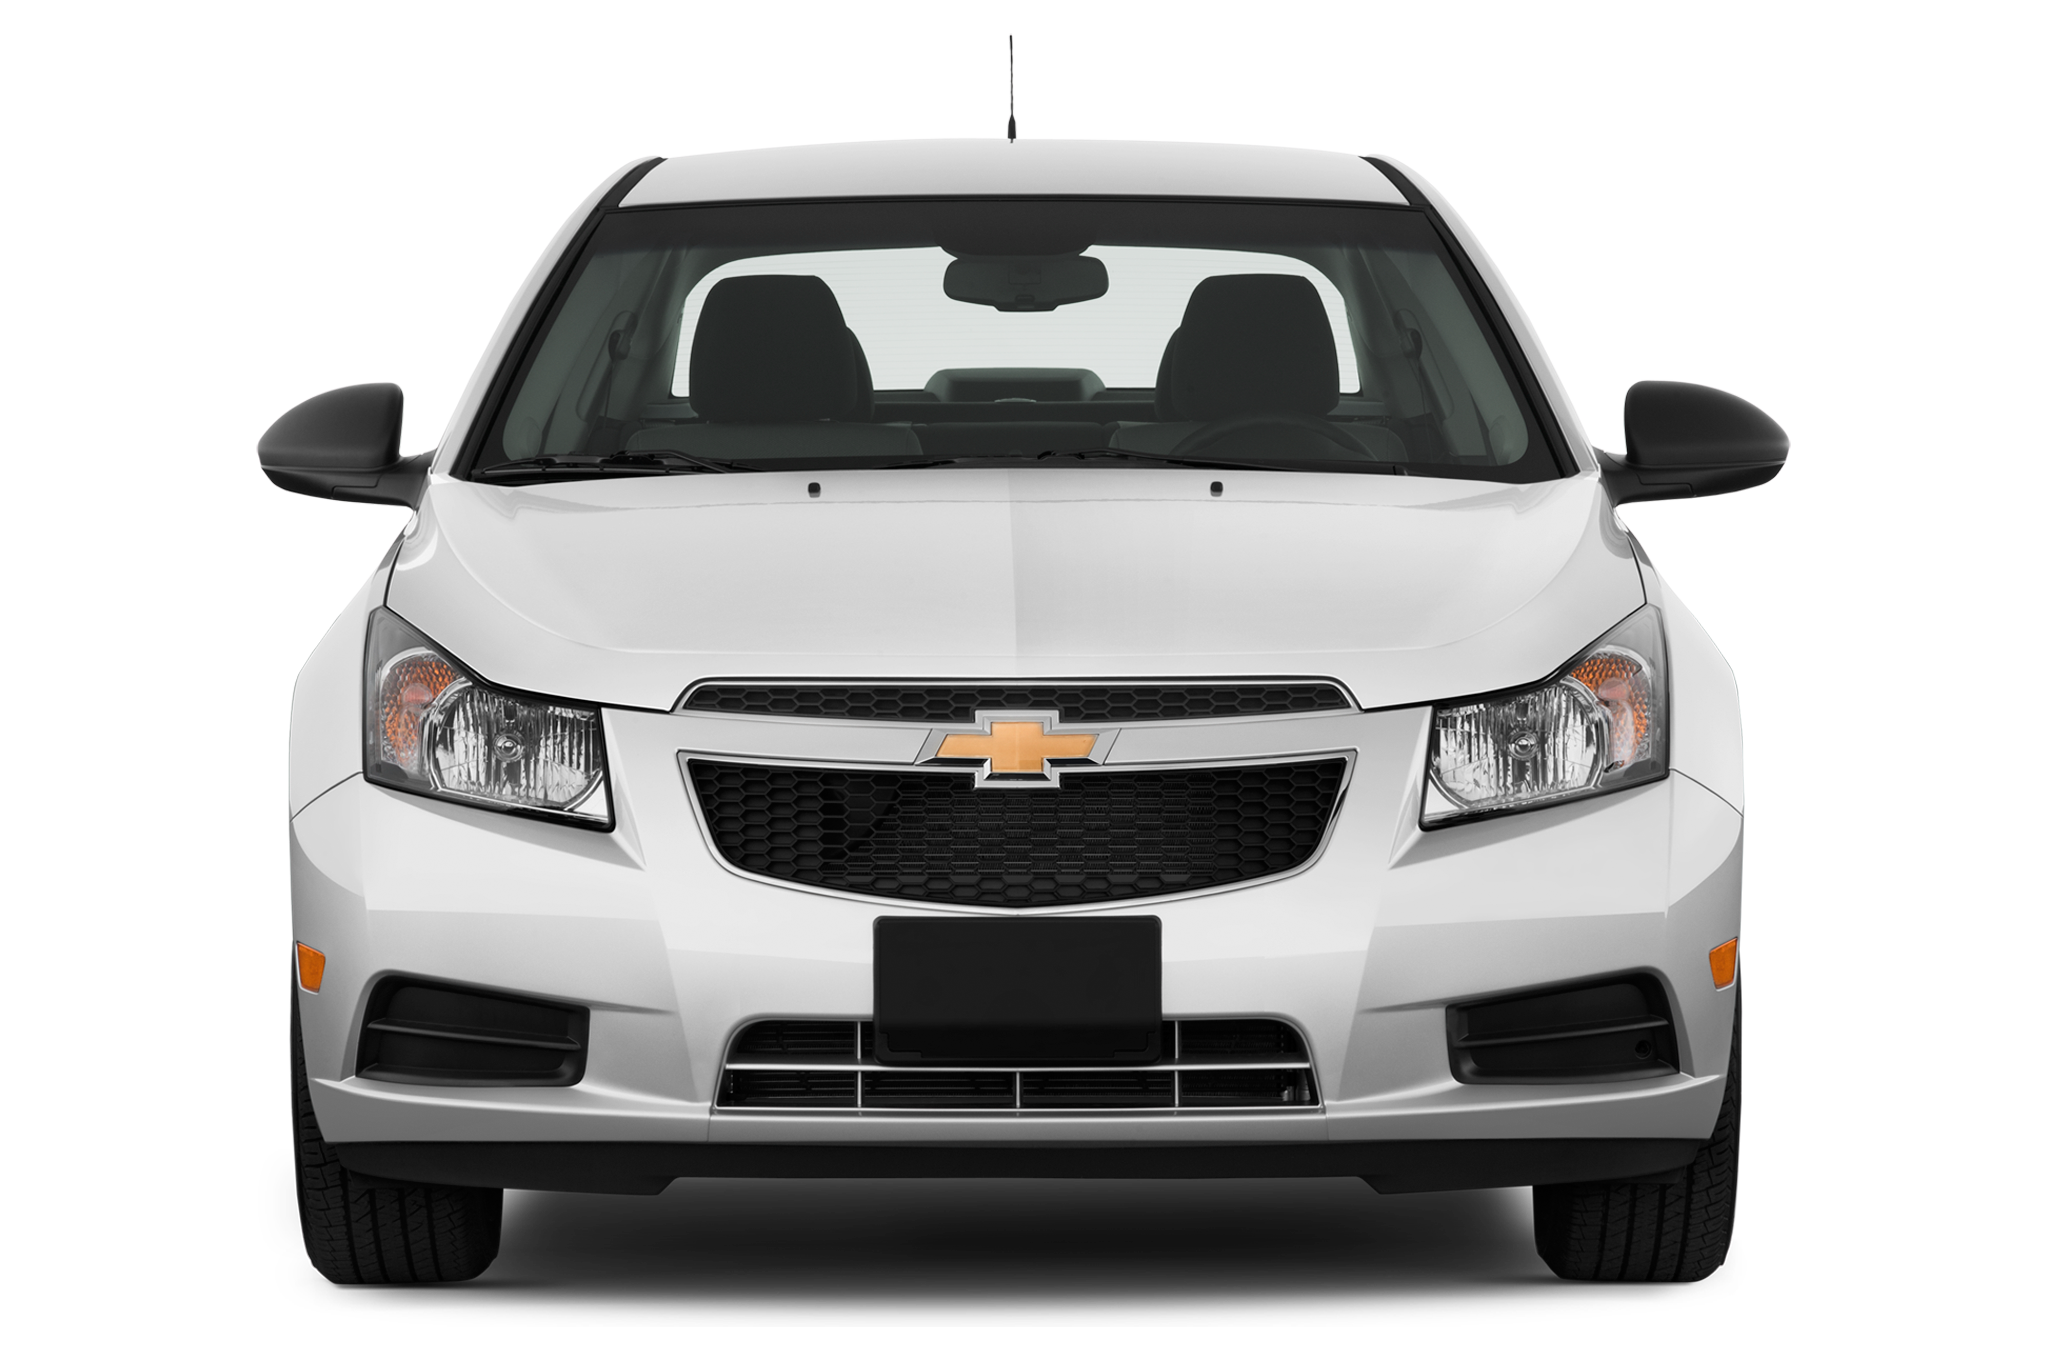 Download Chevrolet Cruze PNG Image for Free.